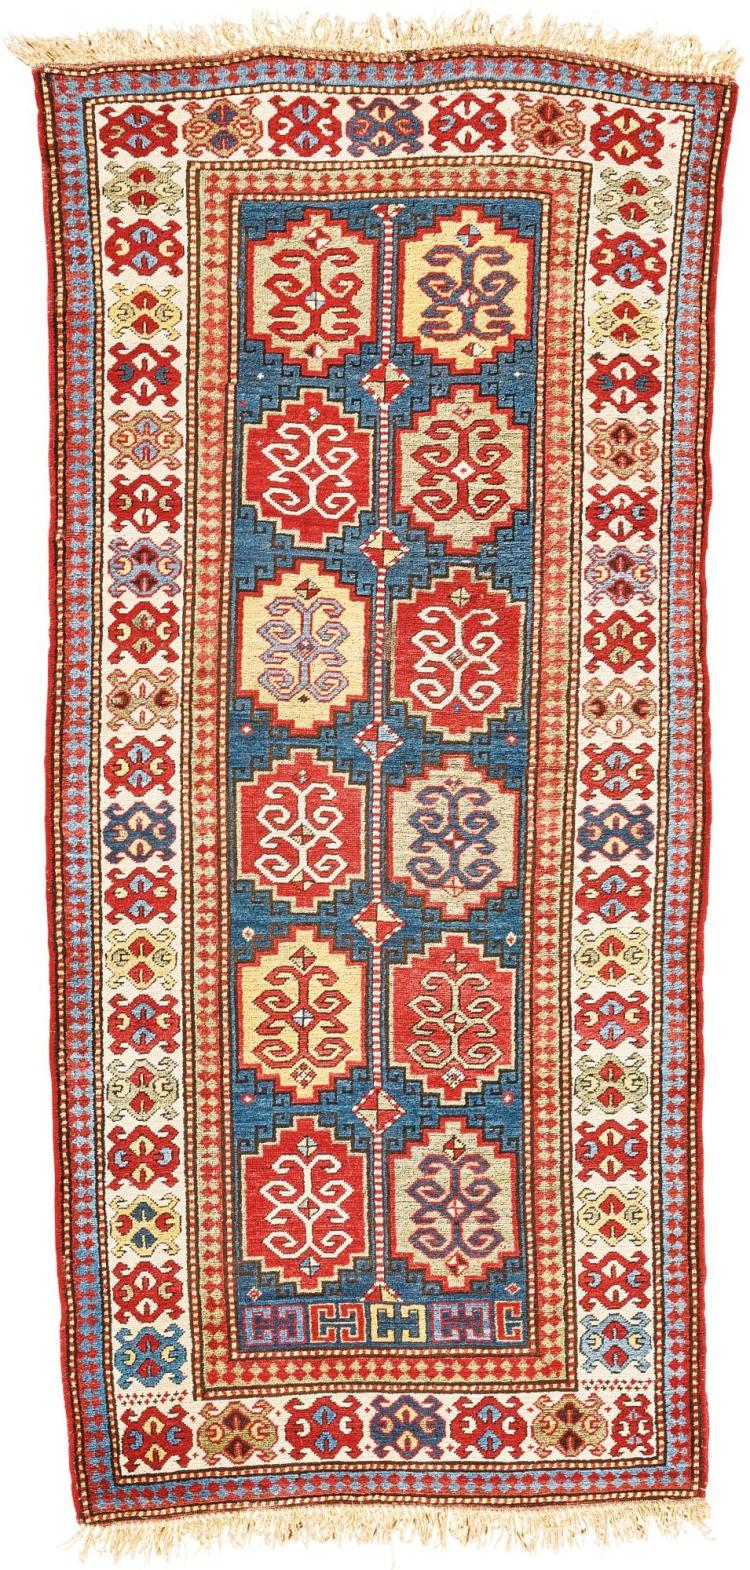 A KAZAK LONG RUG, WEST CAUCASUS |